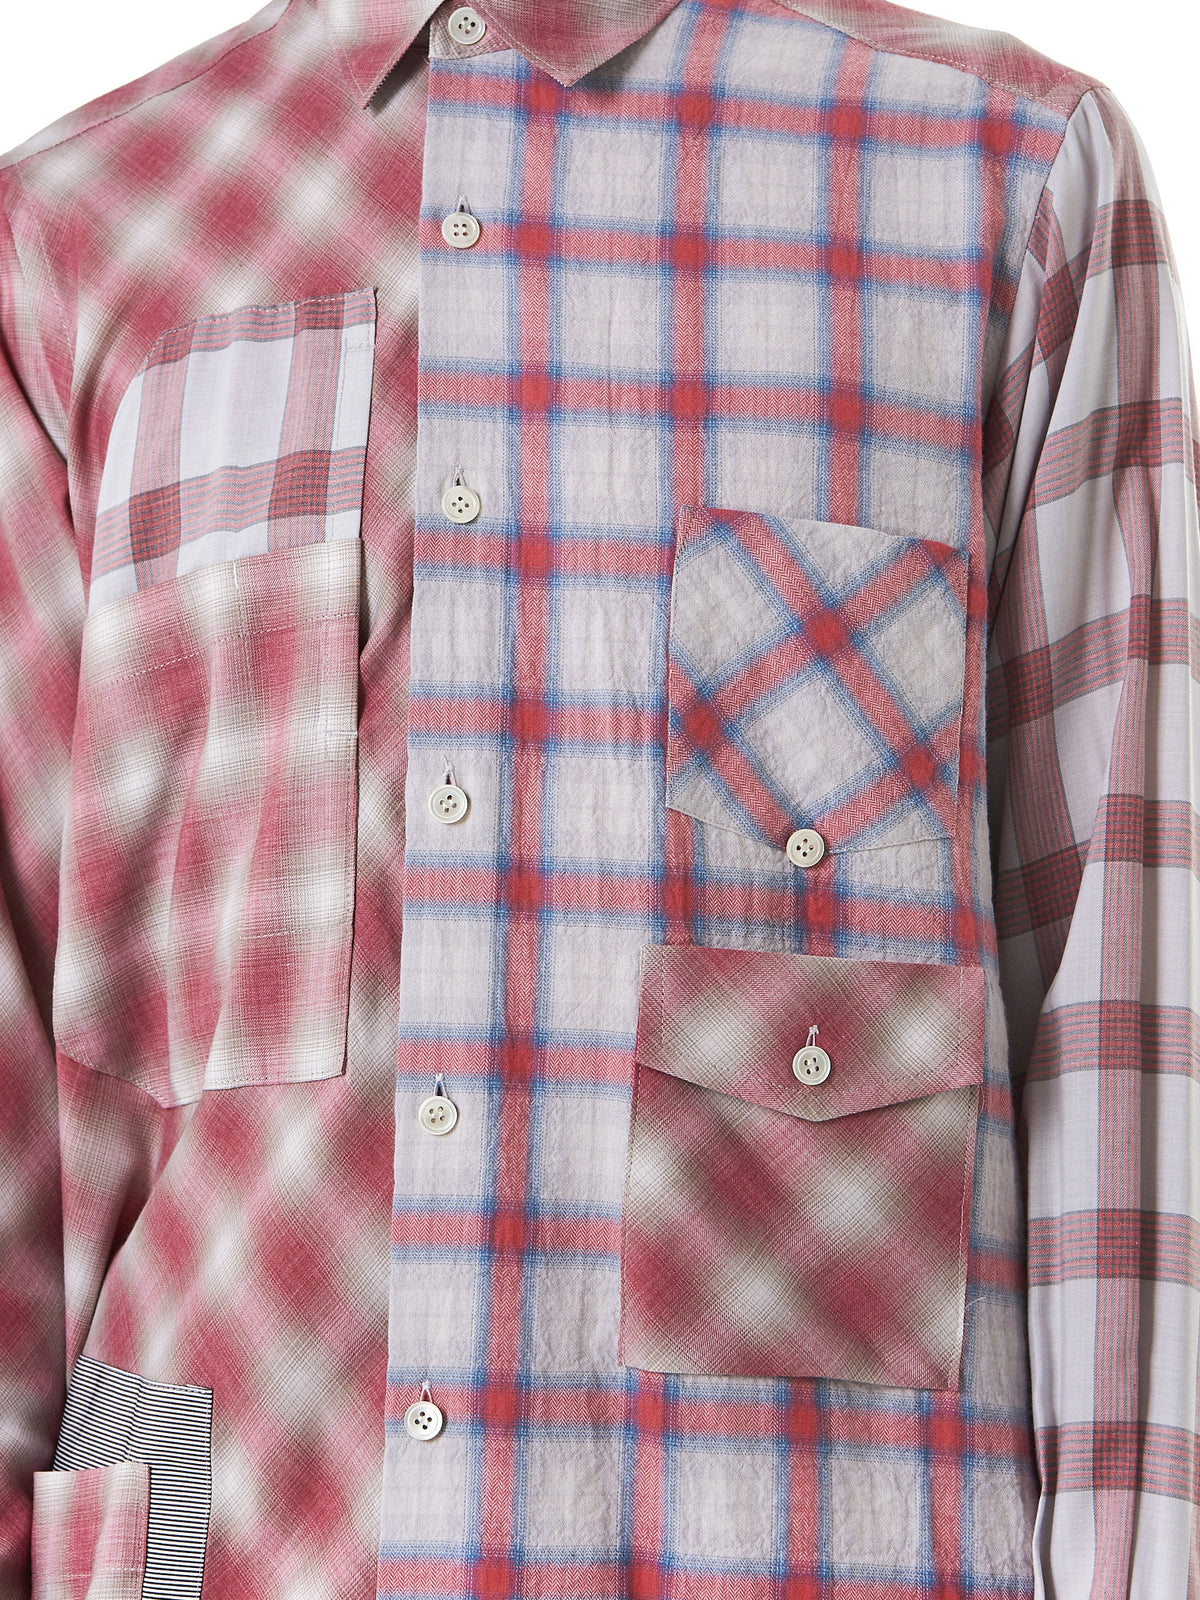 Oversized Button-Down Flannel (17TMB12008-PINKMIX) - H. Lorenzo